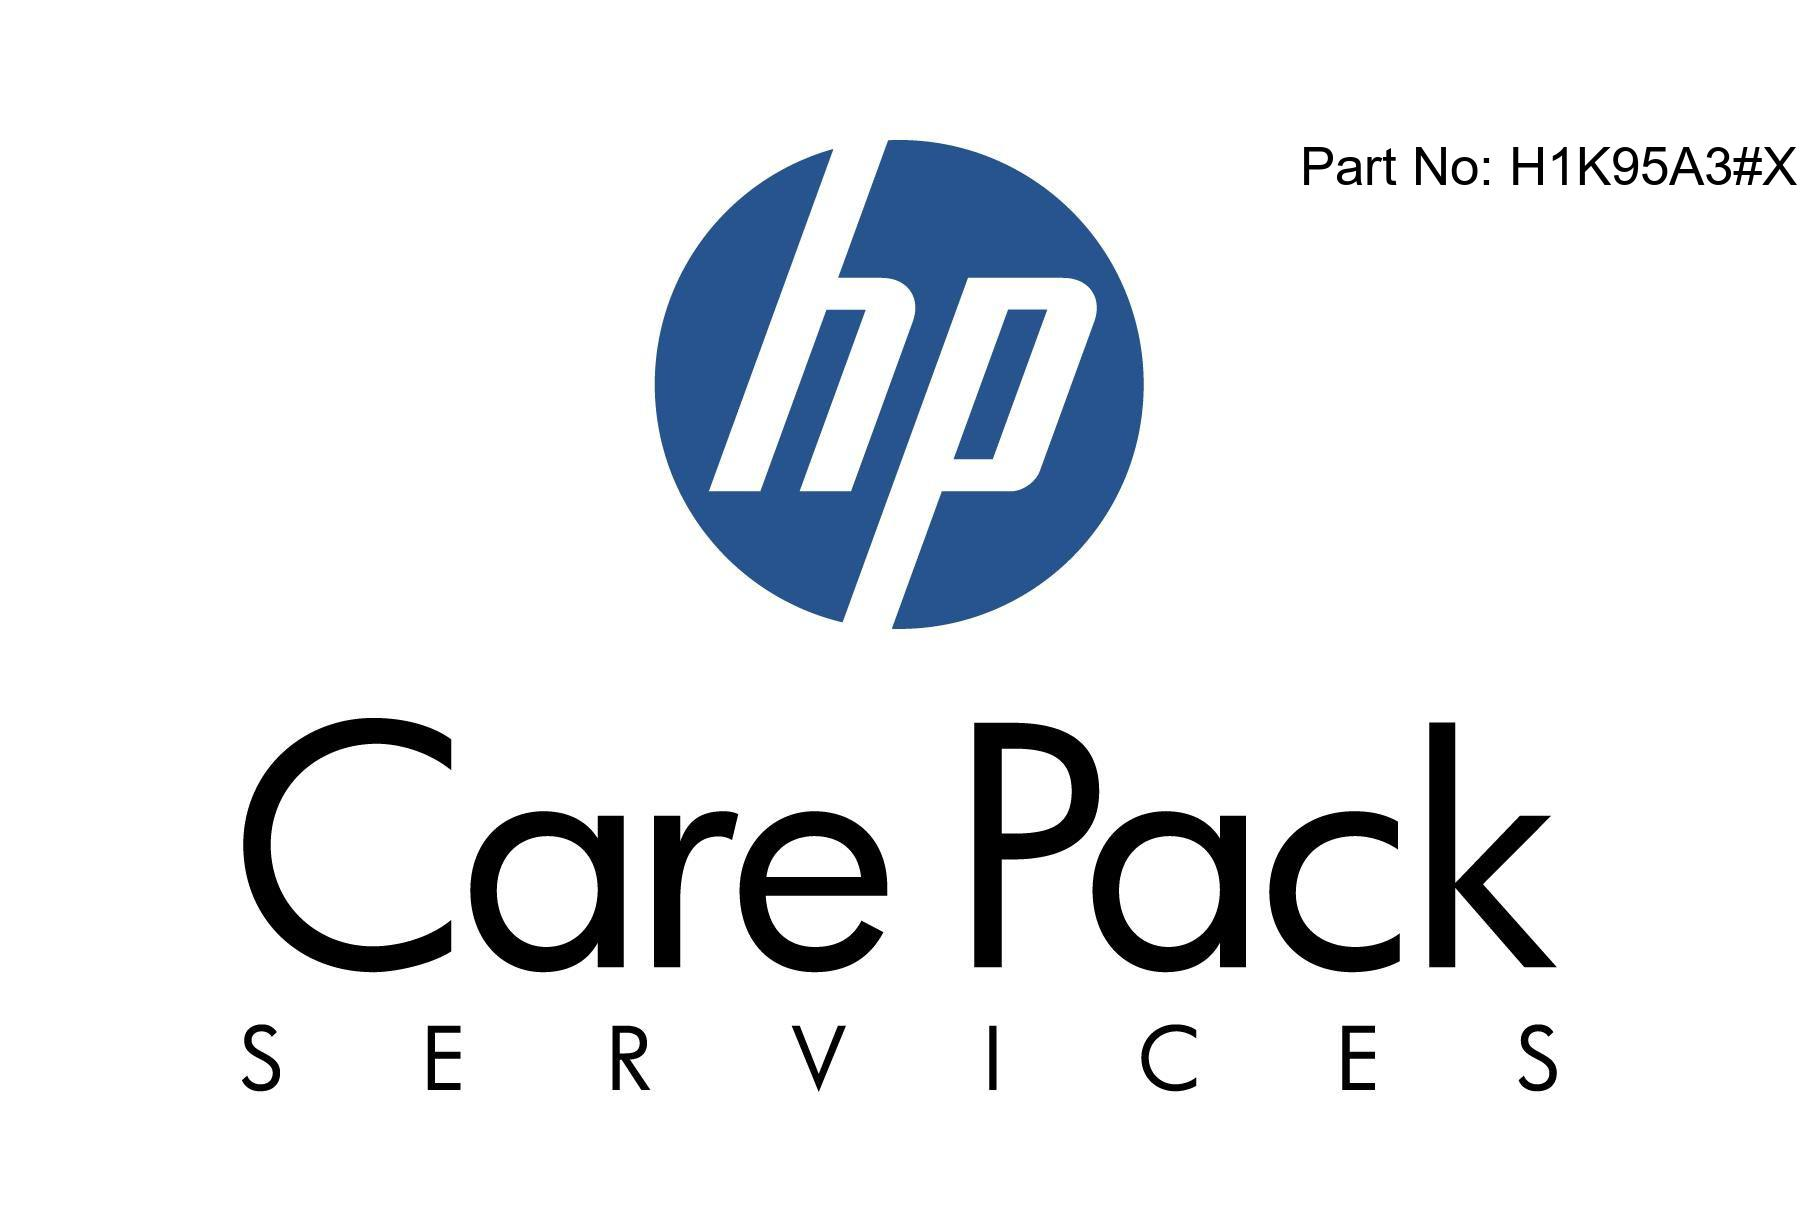 Proactive Care Call-To-Repair Service with Defective Media Retention - Technical support - for HPE 3PAR 8450 Adaptive Optimization - 8 drives - phone consulting - 3 years - 24x7 - response time: 2 h